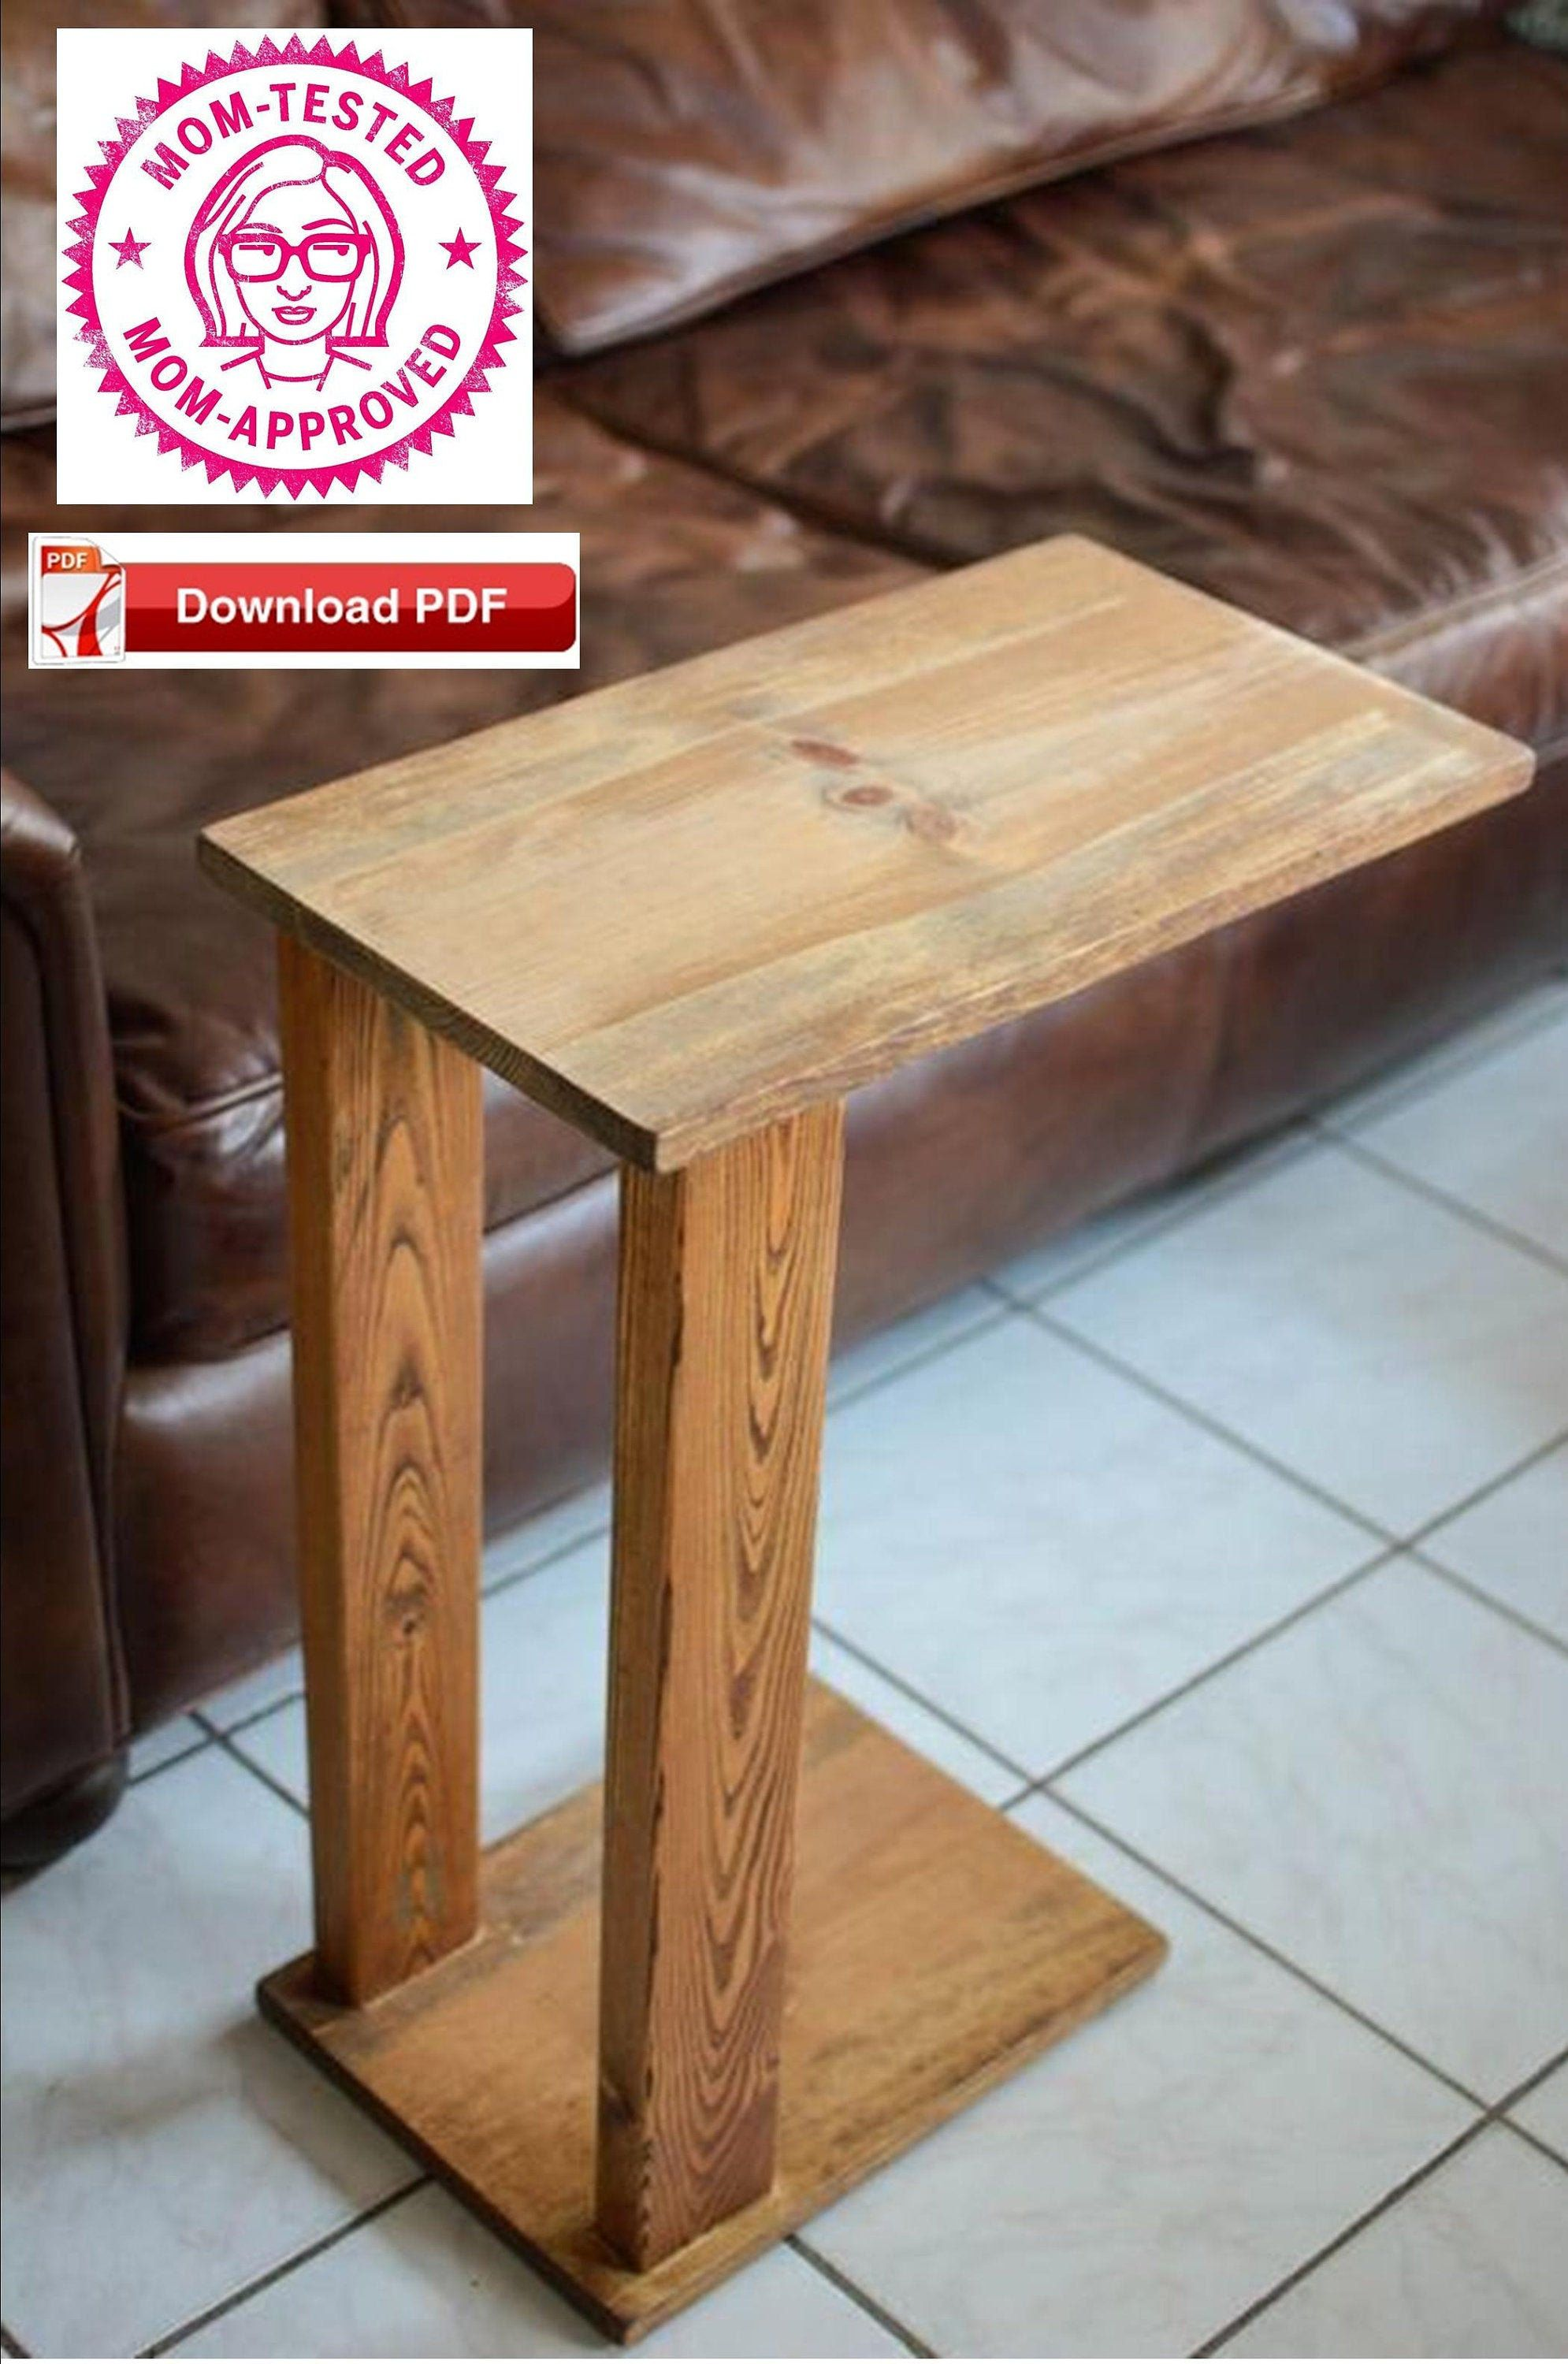 Sofa Stand Plan End Table Plan Rustic Table Plan Tv Stand Plan